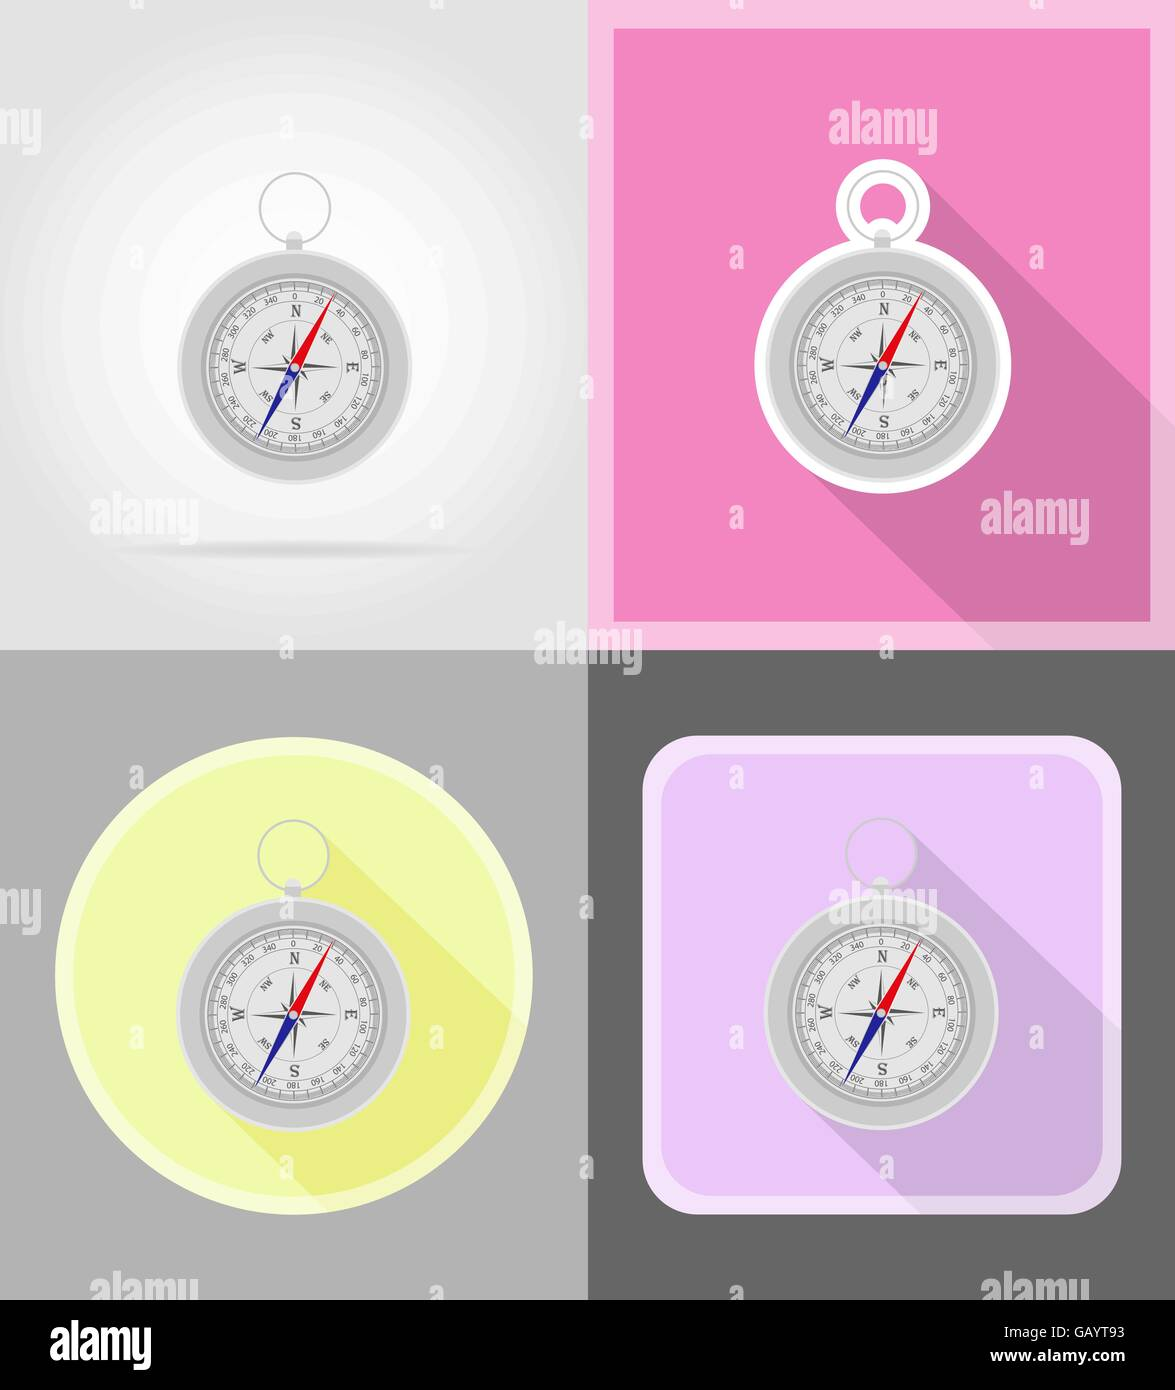 compass flat icons vector illustration isolated on background - Stock Vector